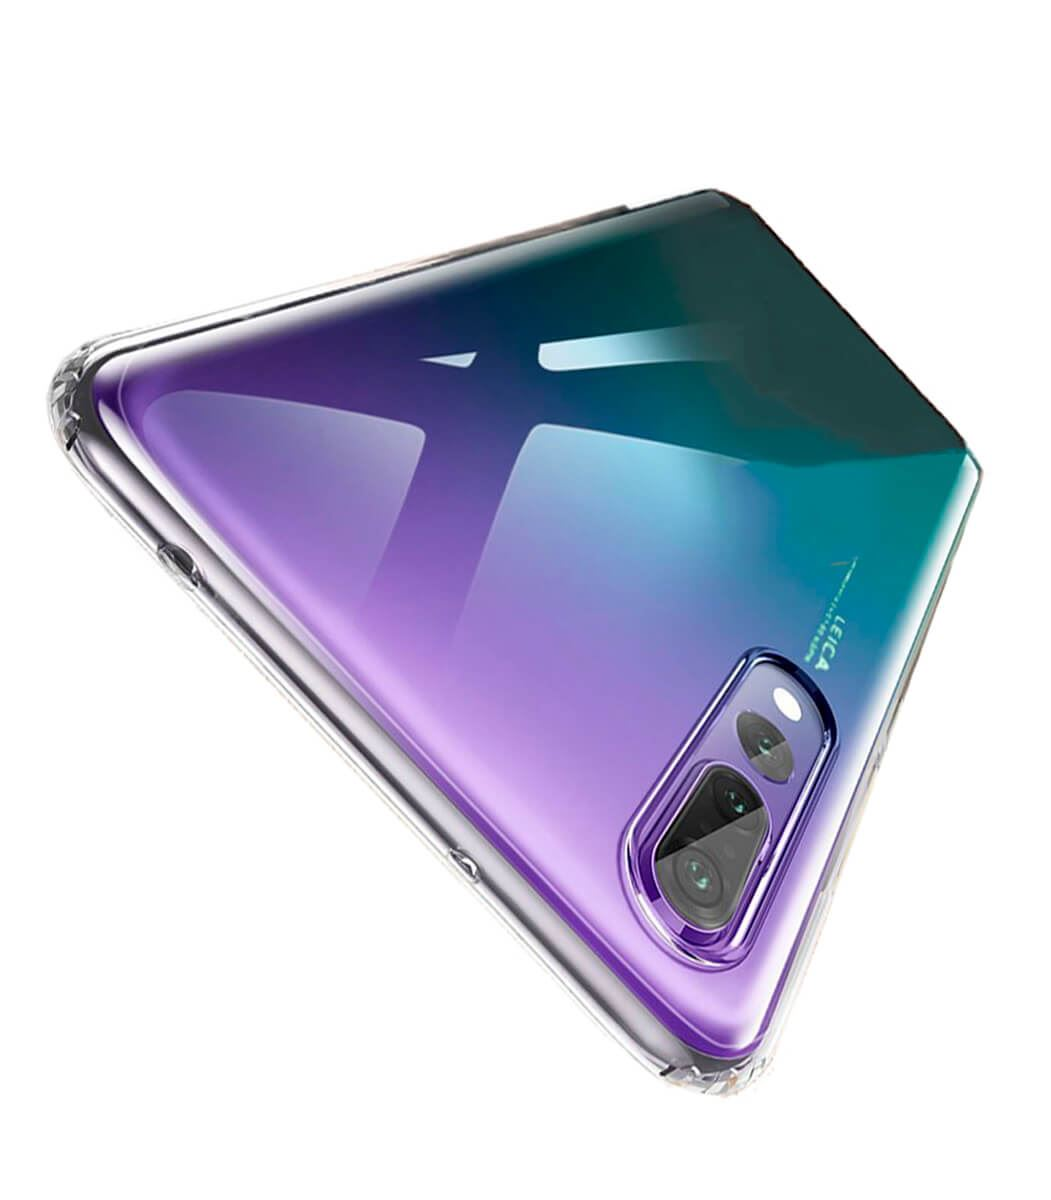 Shockproof-Silicone-Protective-Clear-Gel-Cover-Case-For-Huawei-P20-Pro-P-Smart thumbnail 26